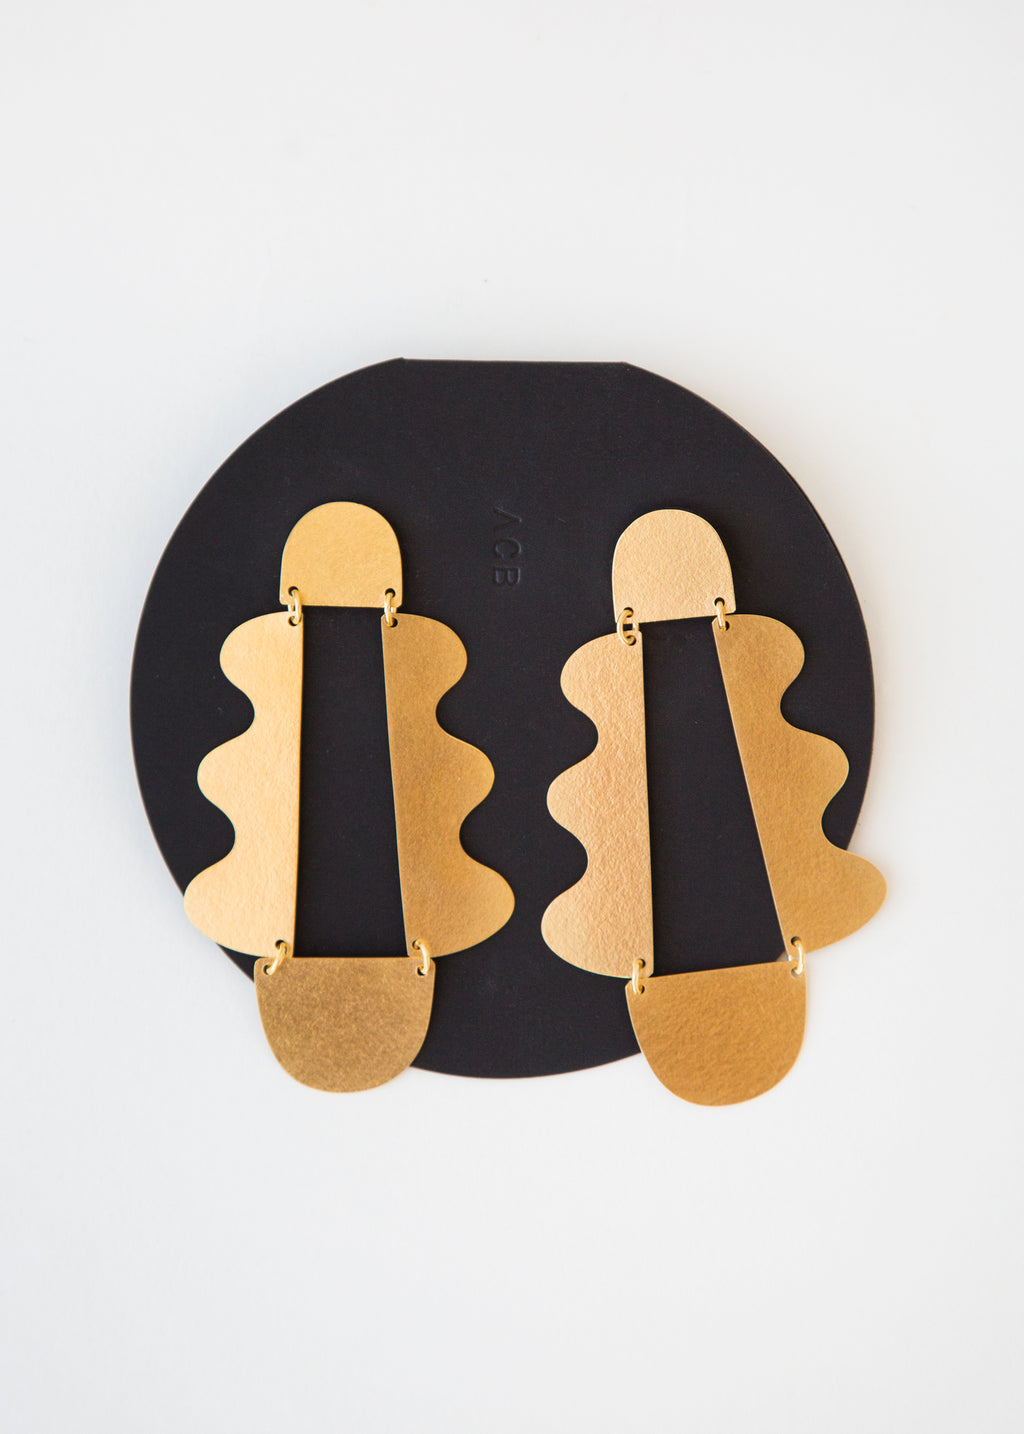 Annie Costello Brown Matisse Earring Gold - SOLD OUT